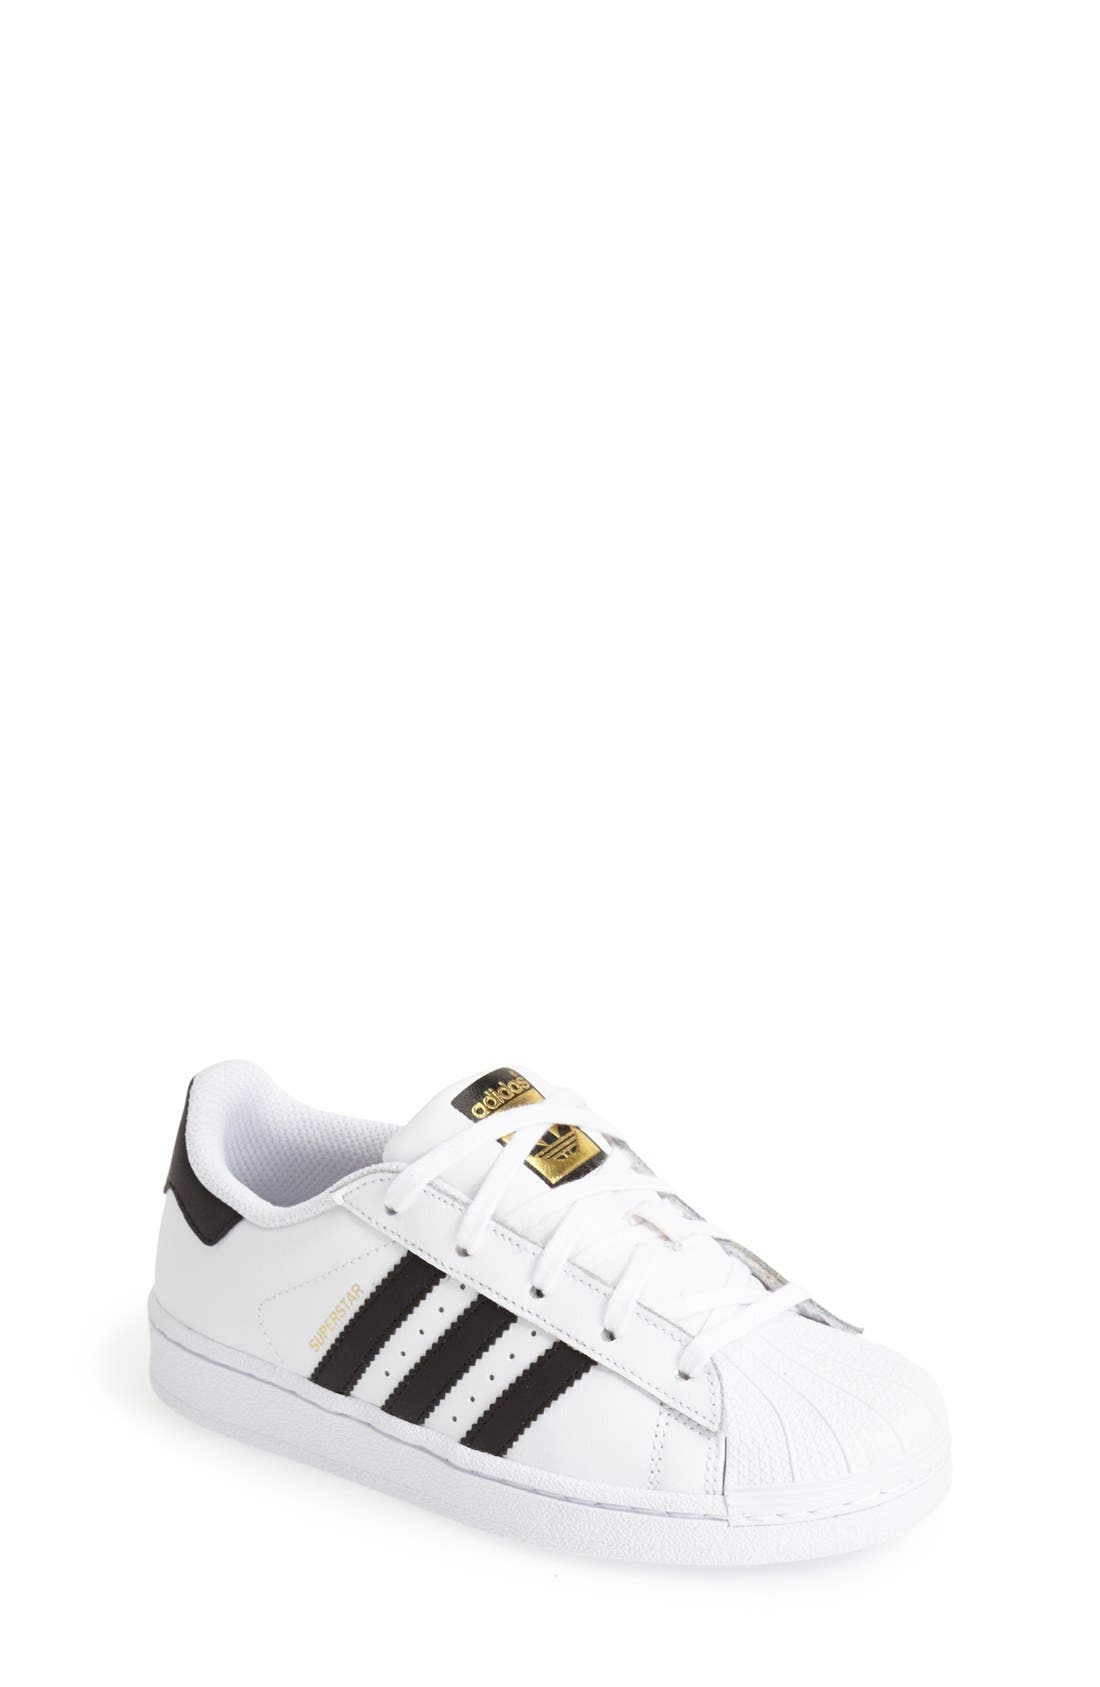 adidas \u0027Superstar C\u0027 Sneaker (Toddler \u0026 Little Kid)